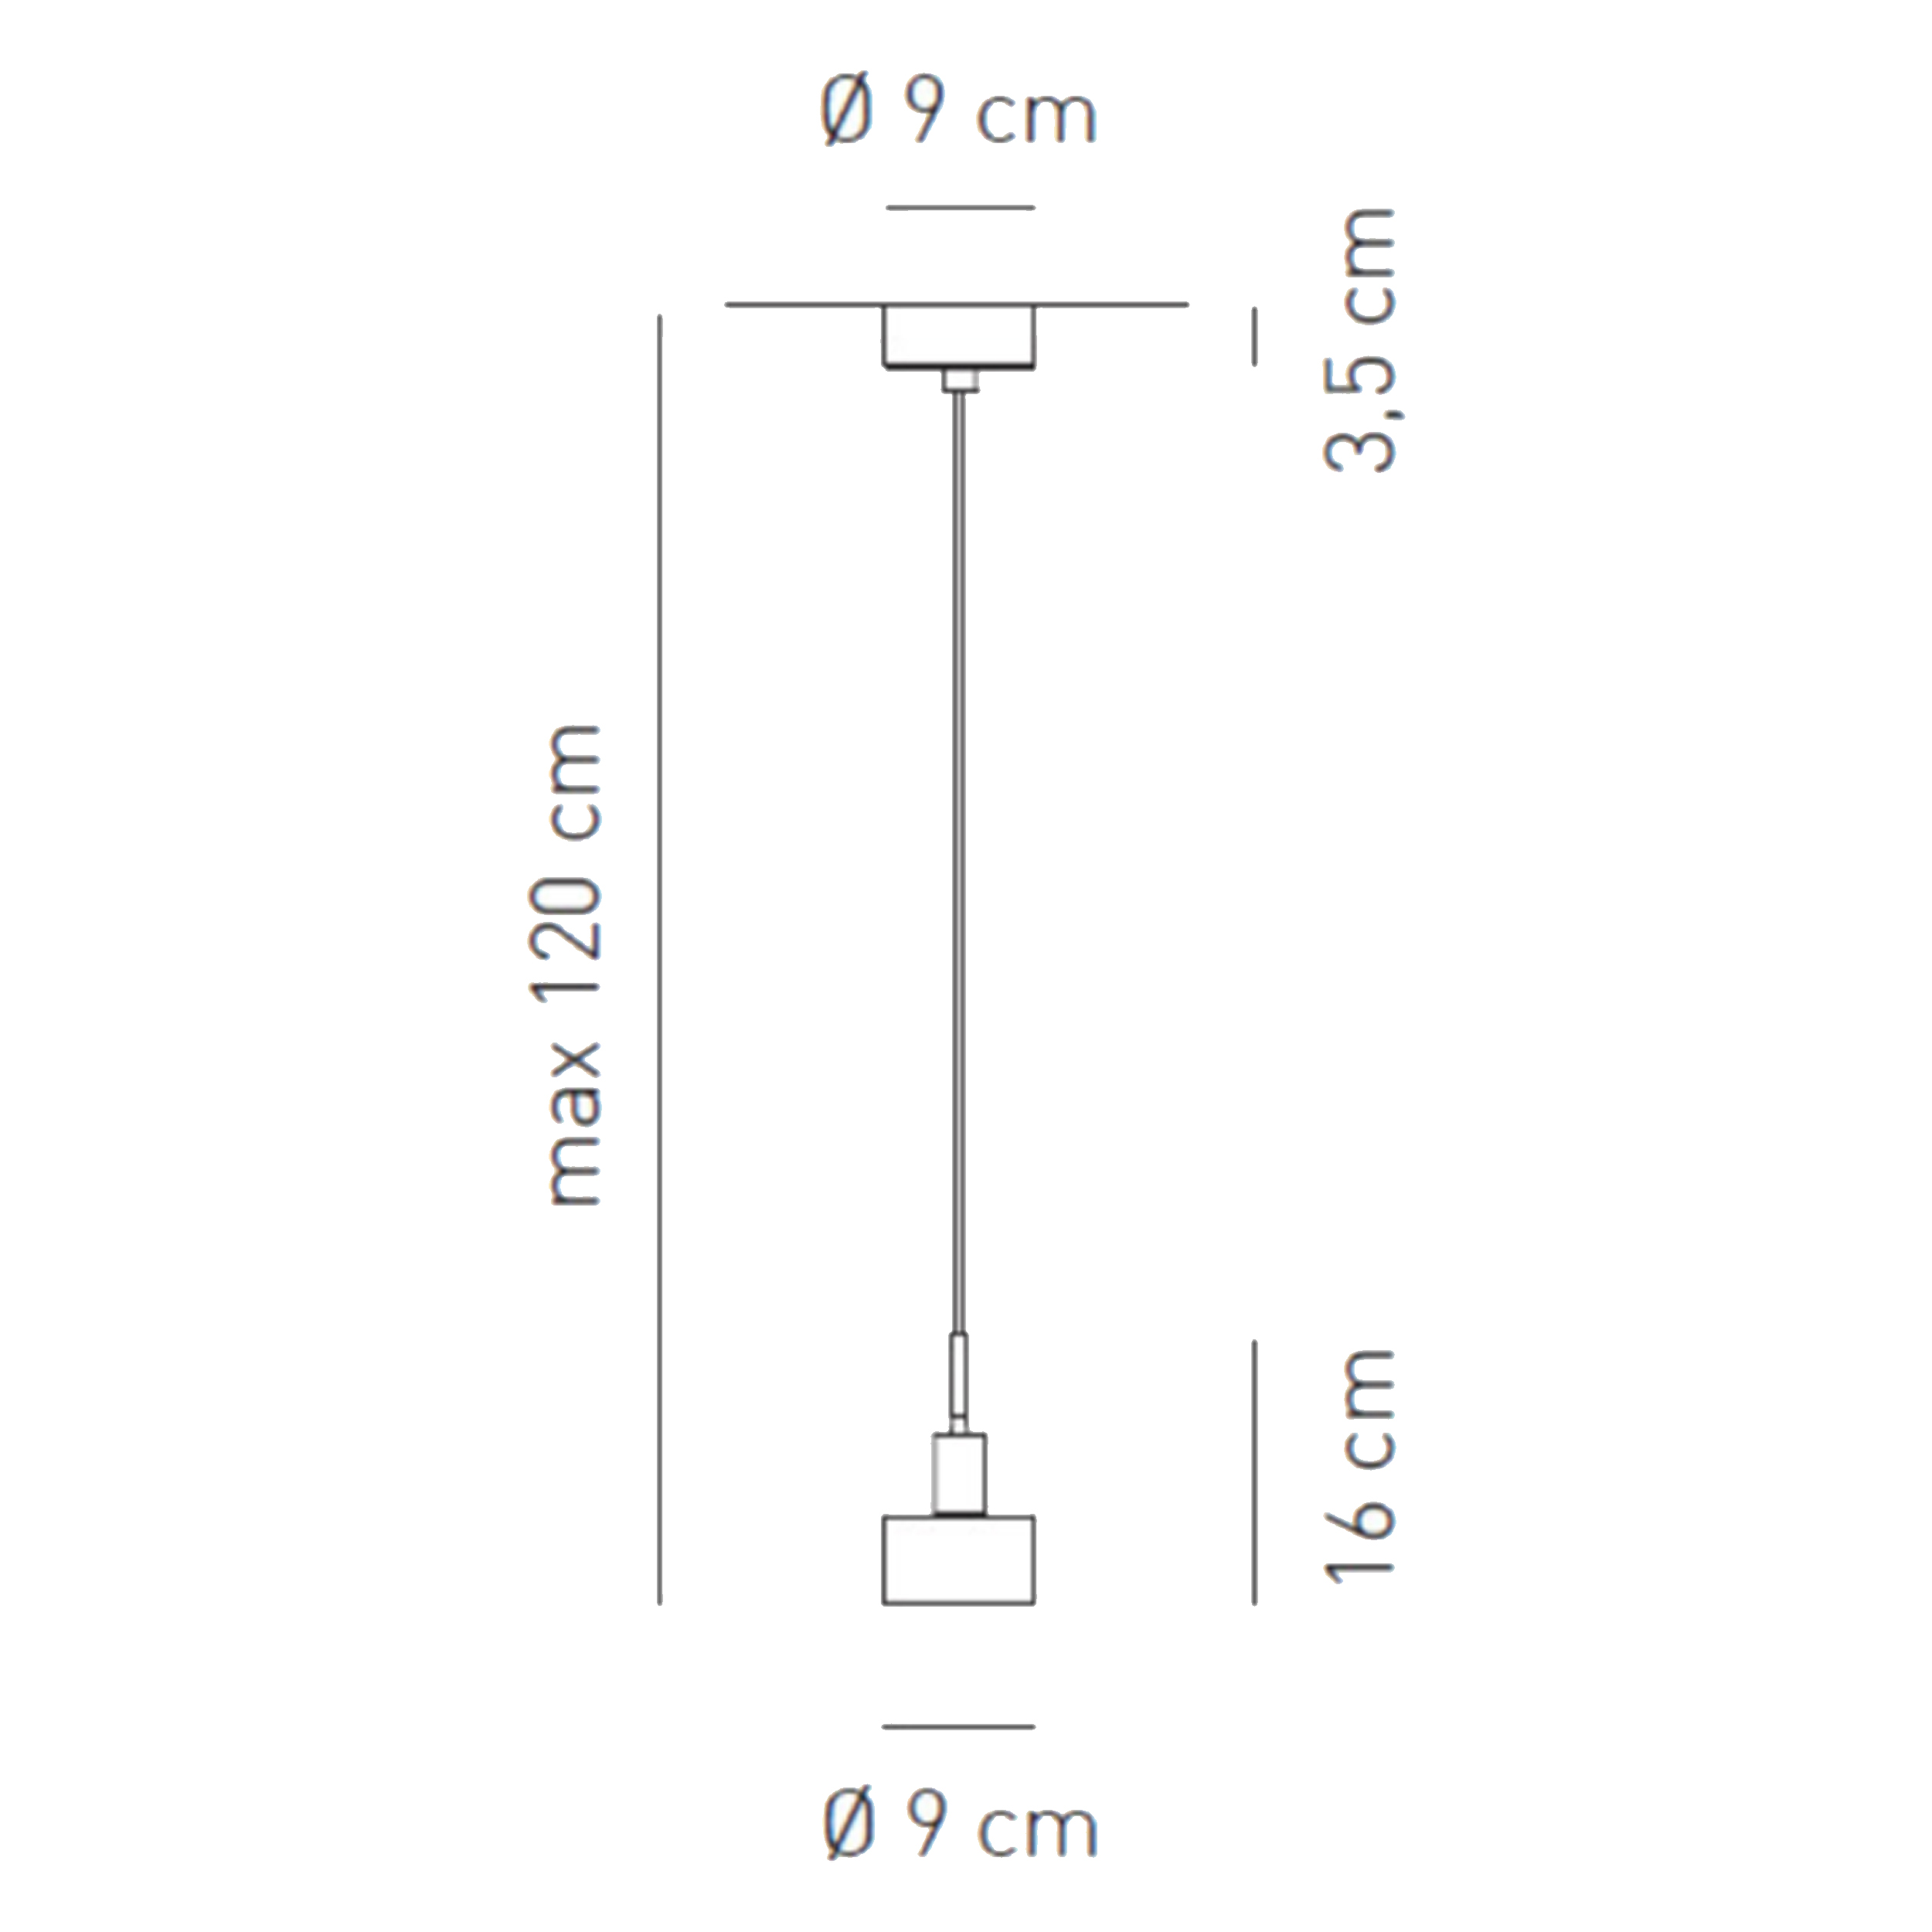 Axolight Ax20 Pendant Light Line Drawing